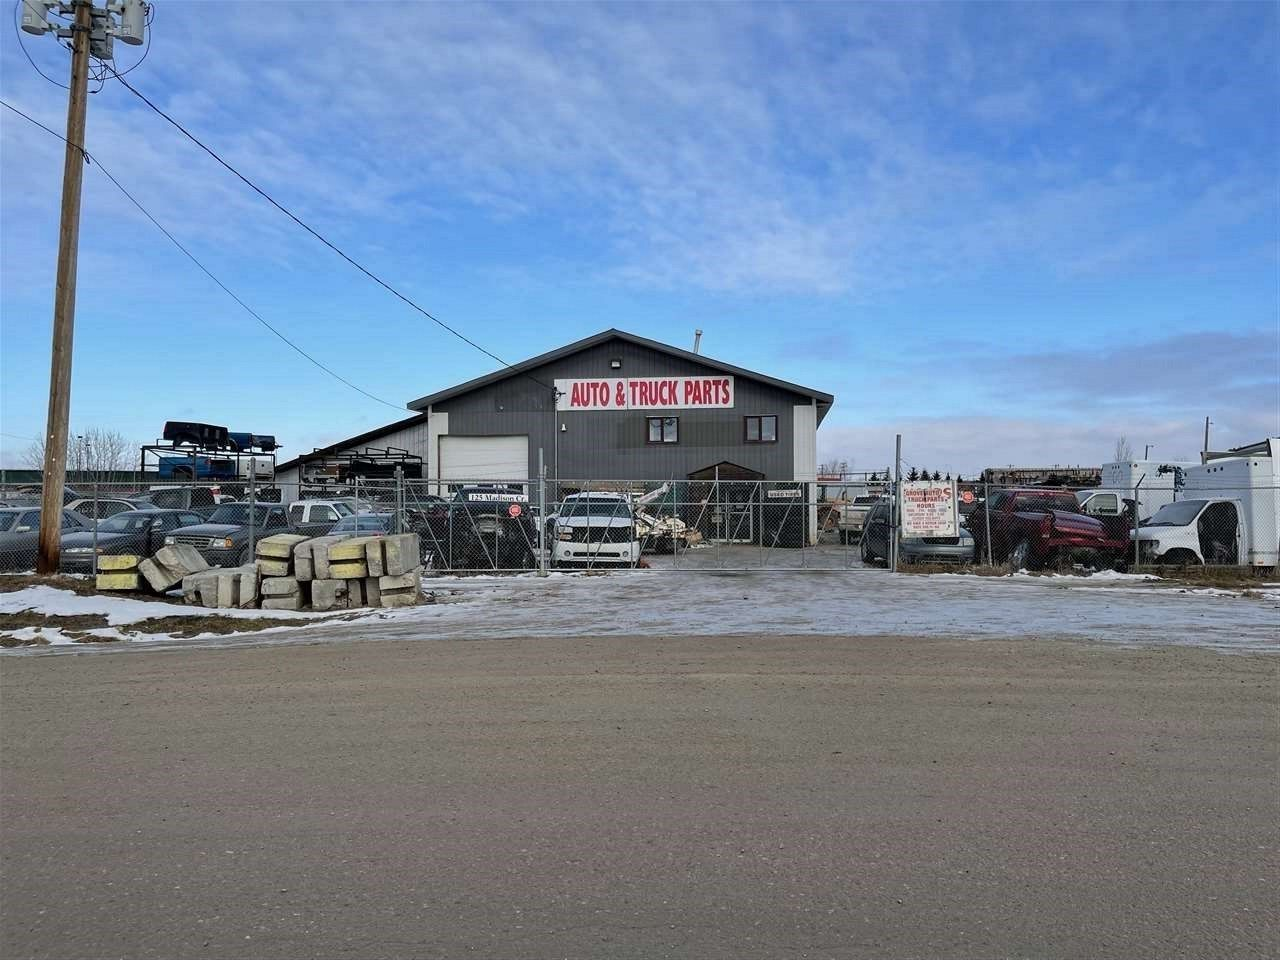 Main Photo: 125 madison Crescent: Spruce Grove Business with Property for sale : MLS®# E4223166